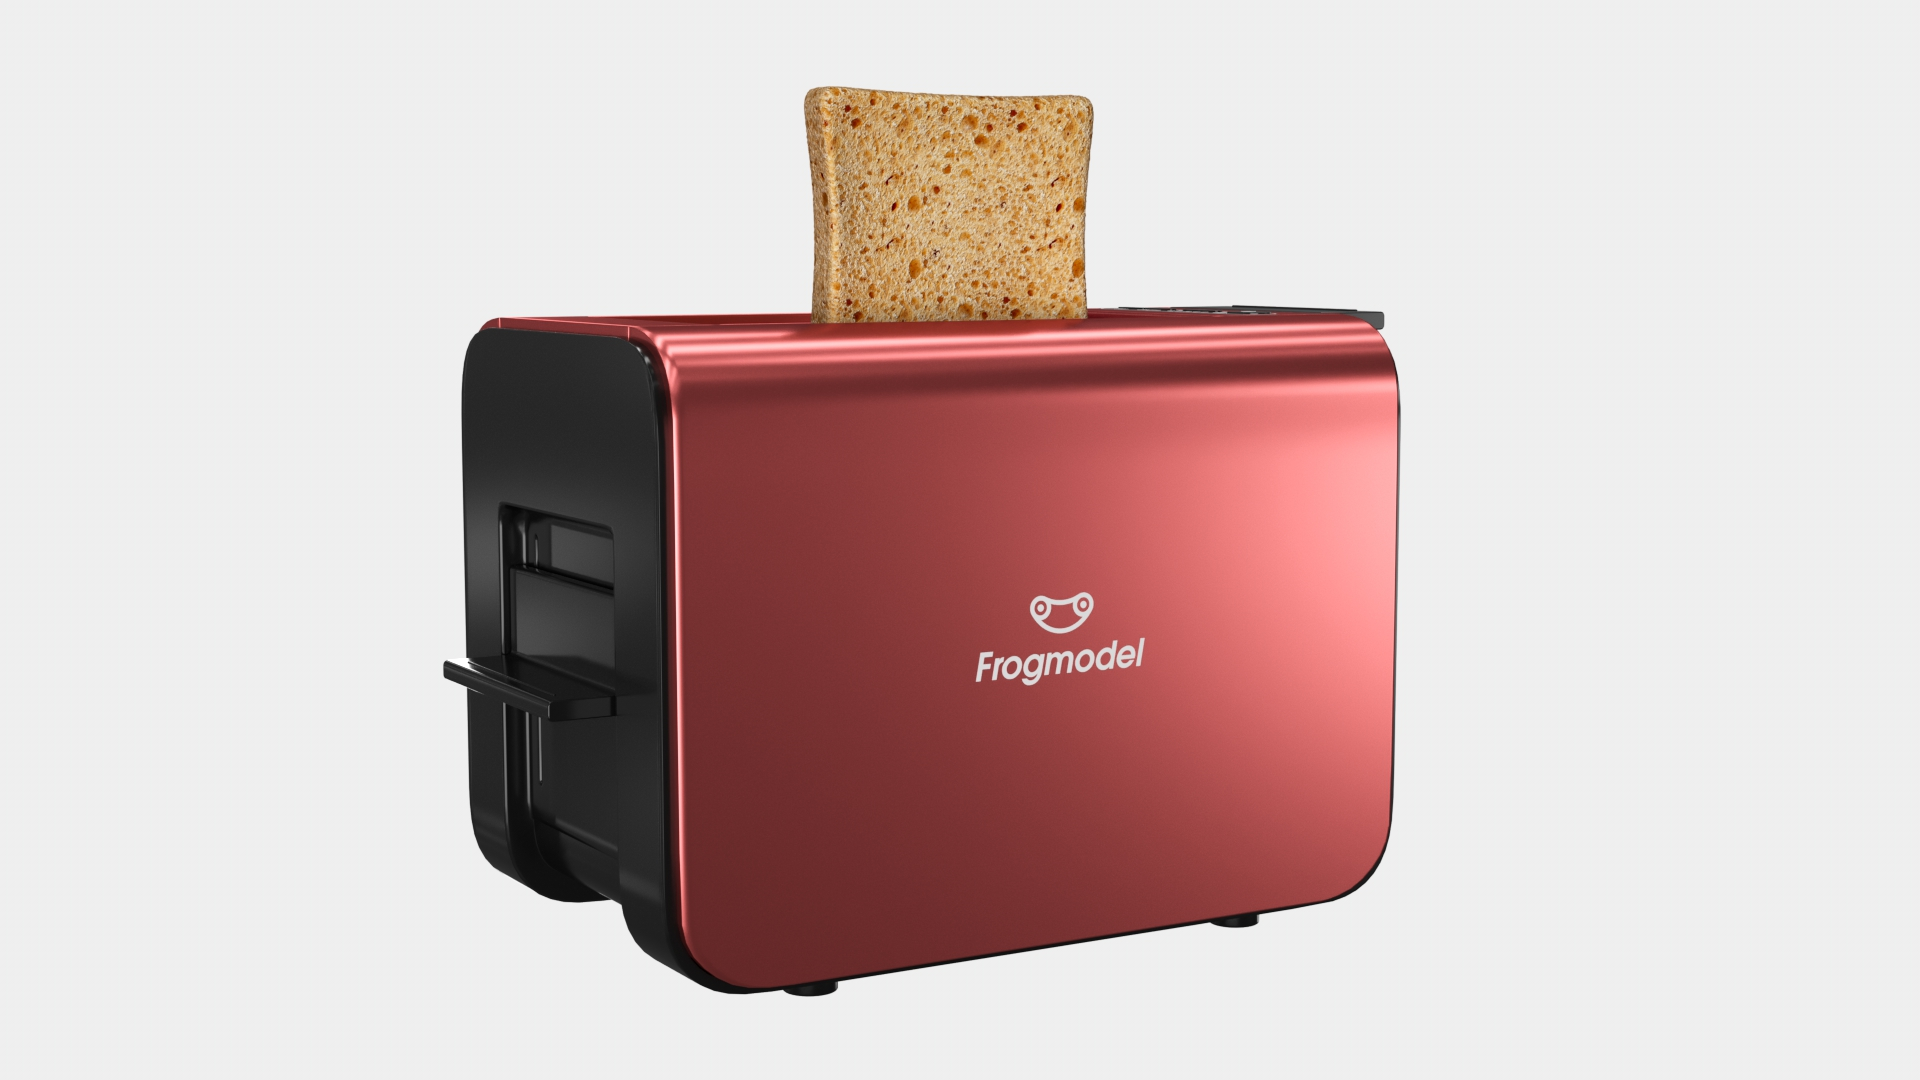 Toaster 3D Model Available for Free Download | FrogModel